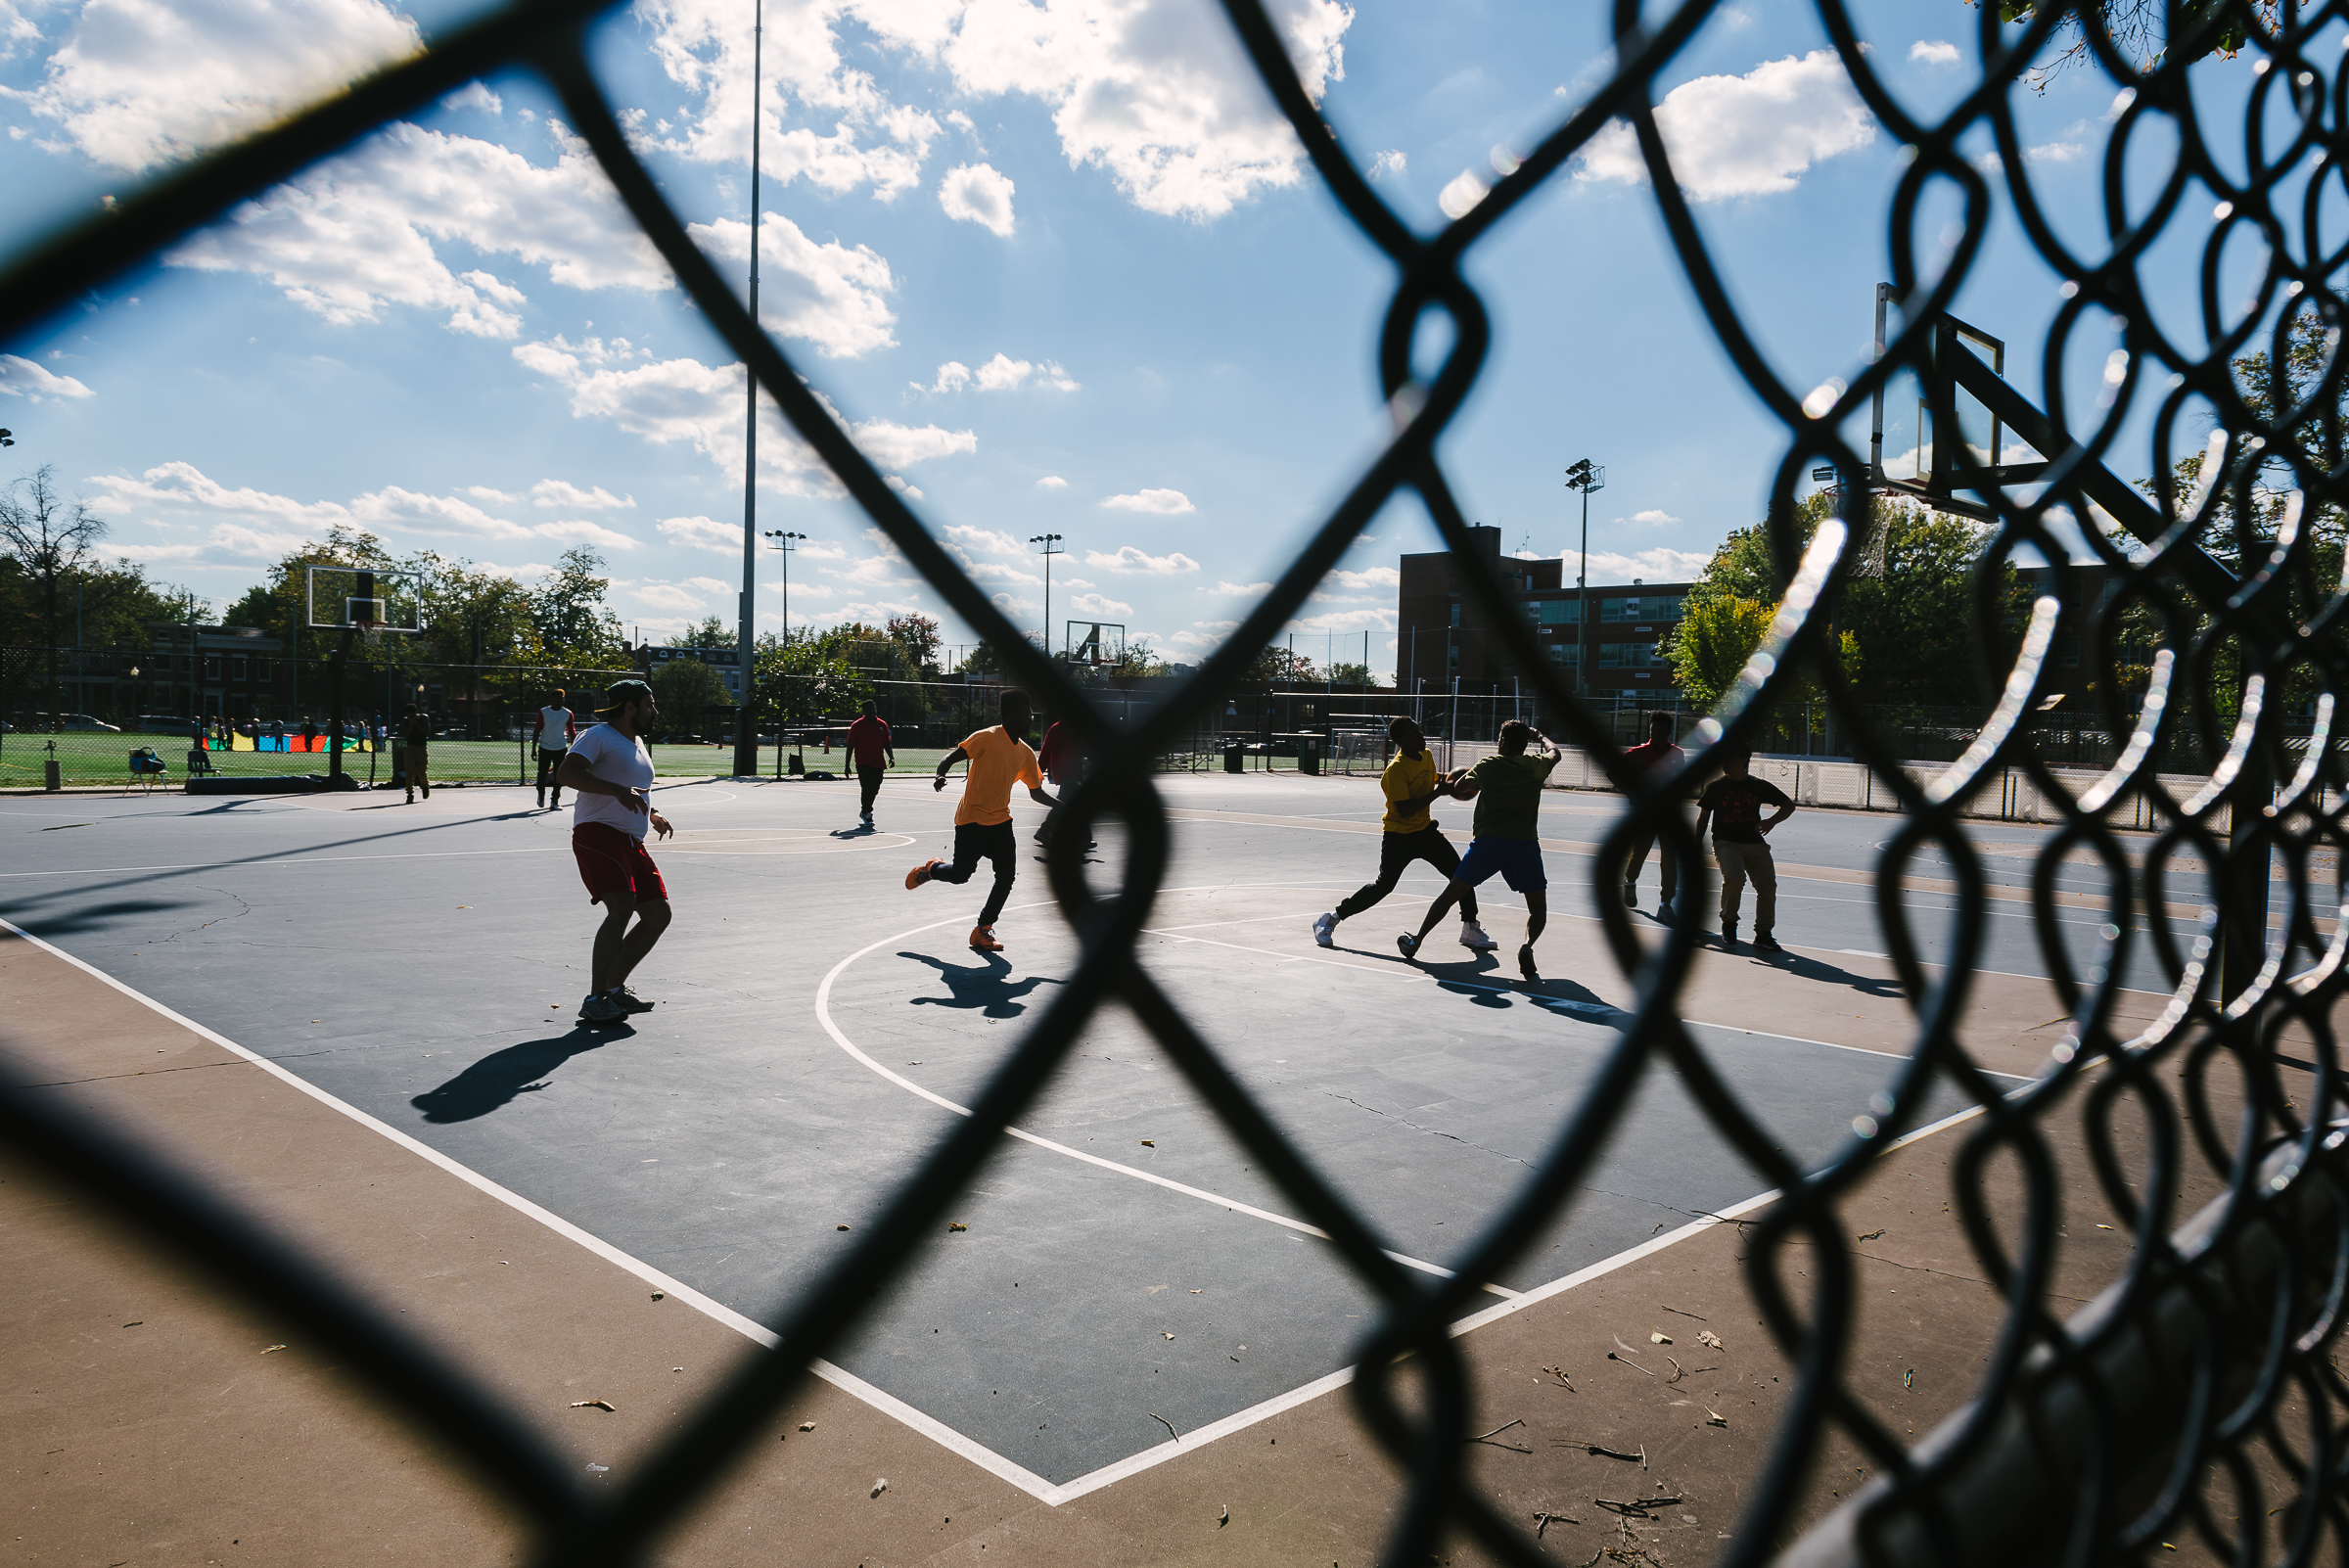 Neighborhood resident play basketball on the courts built when the new school was built next door to the old one. Often, new buildings are constructed instead of preserving the old ones as a cost-cutting measure, leaving historic structures to rot in vacancy.